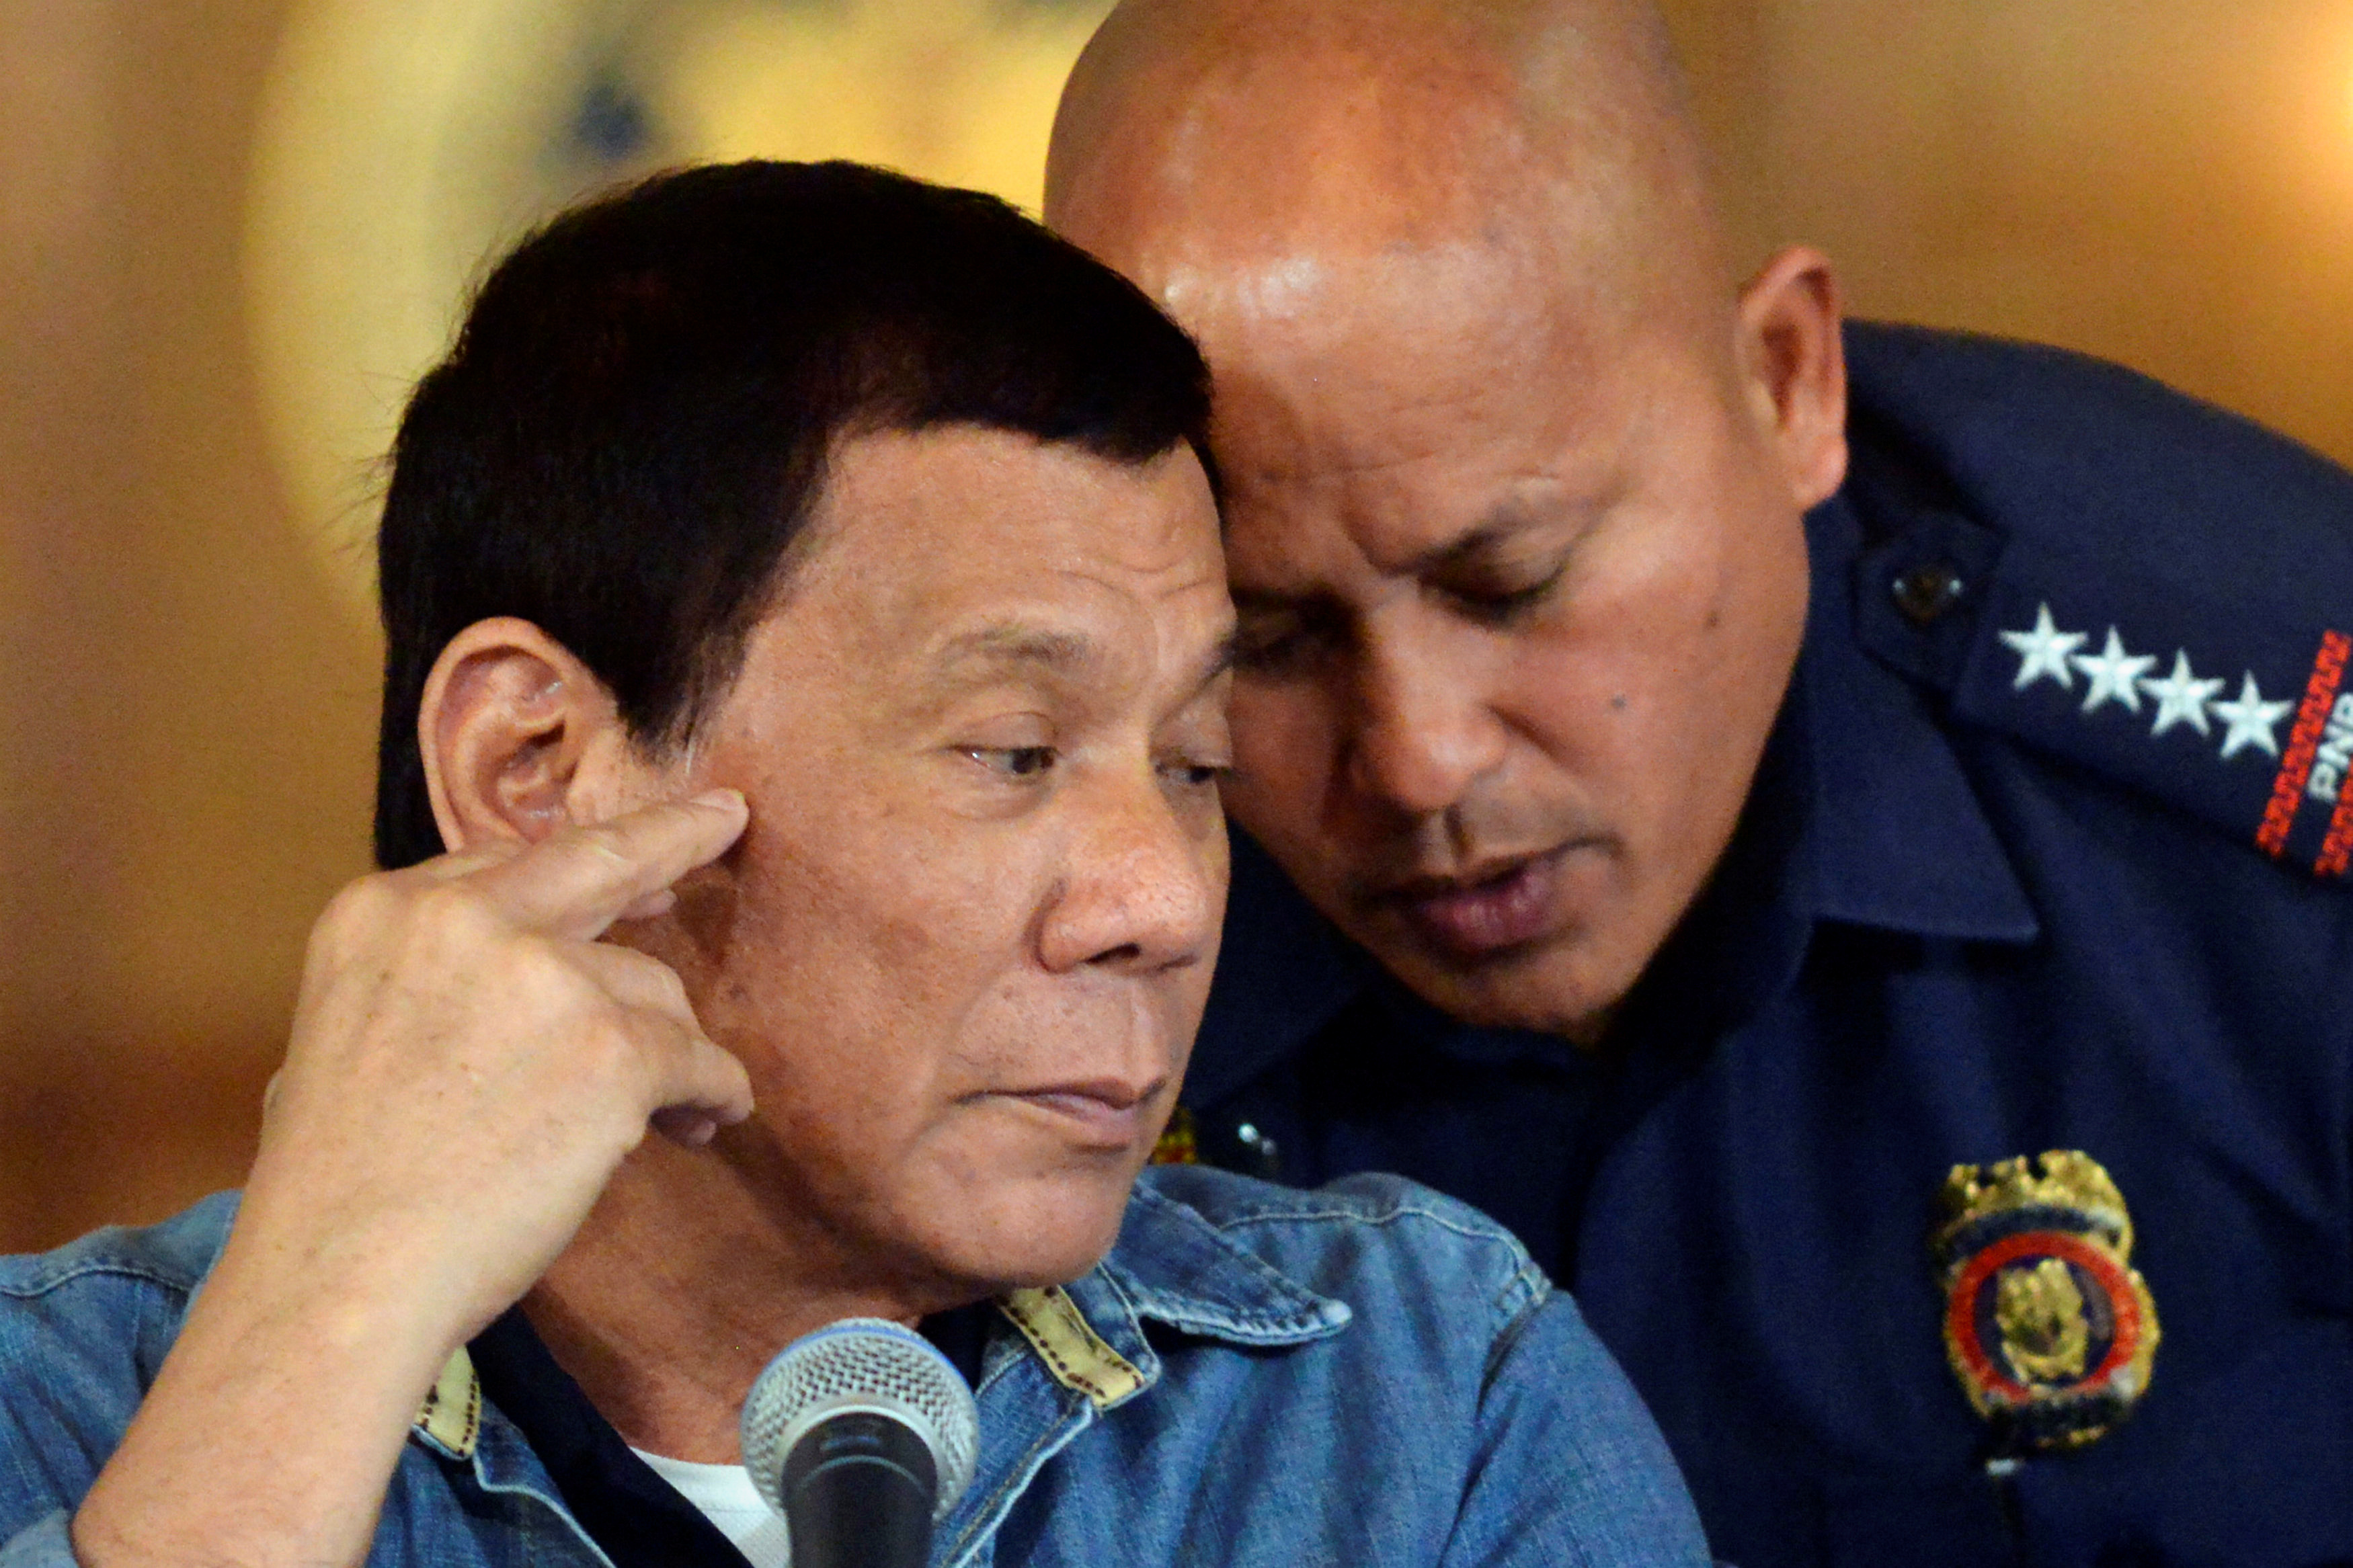 Philippine President Rodrigo Duterte listens to Philippine National Police (PNP) Director General Ronald Dela Rosa at the presidential palace in Manila, Philippines on Jan. 29, 2017.